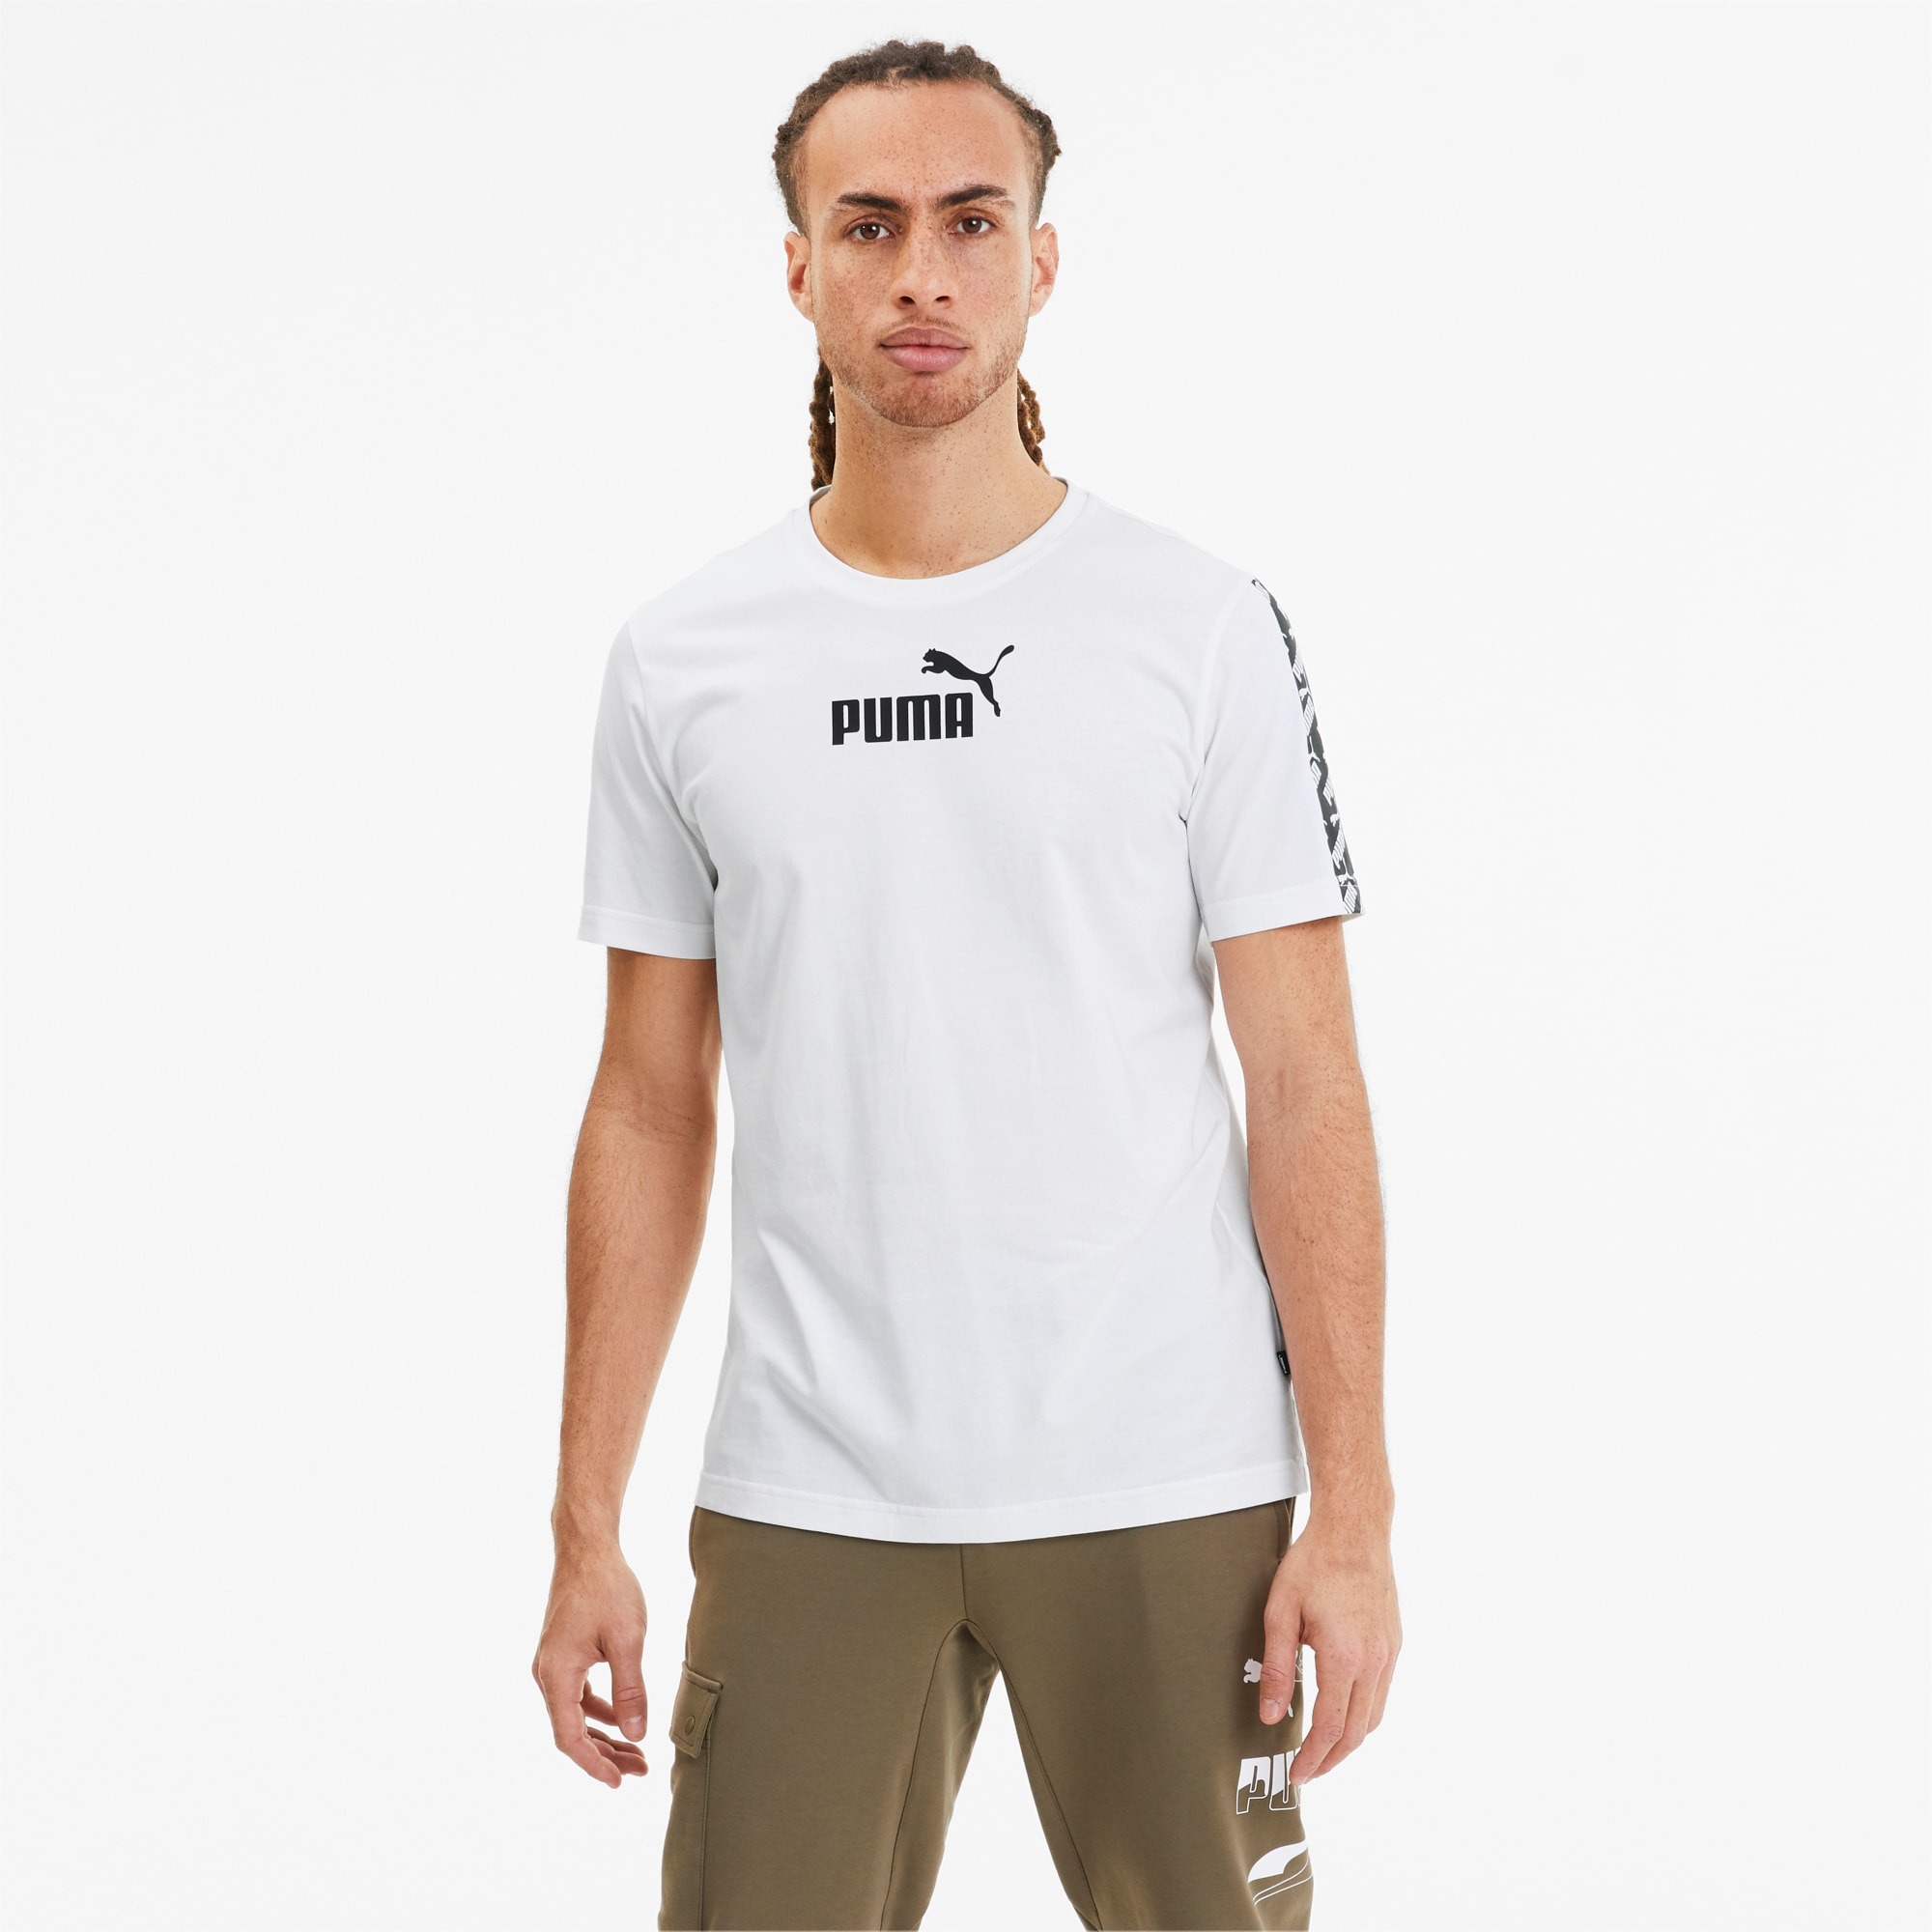 T shirt da uomo Amplified